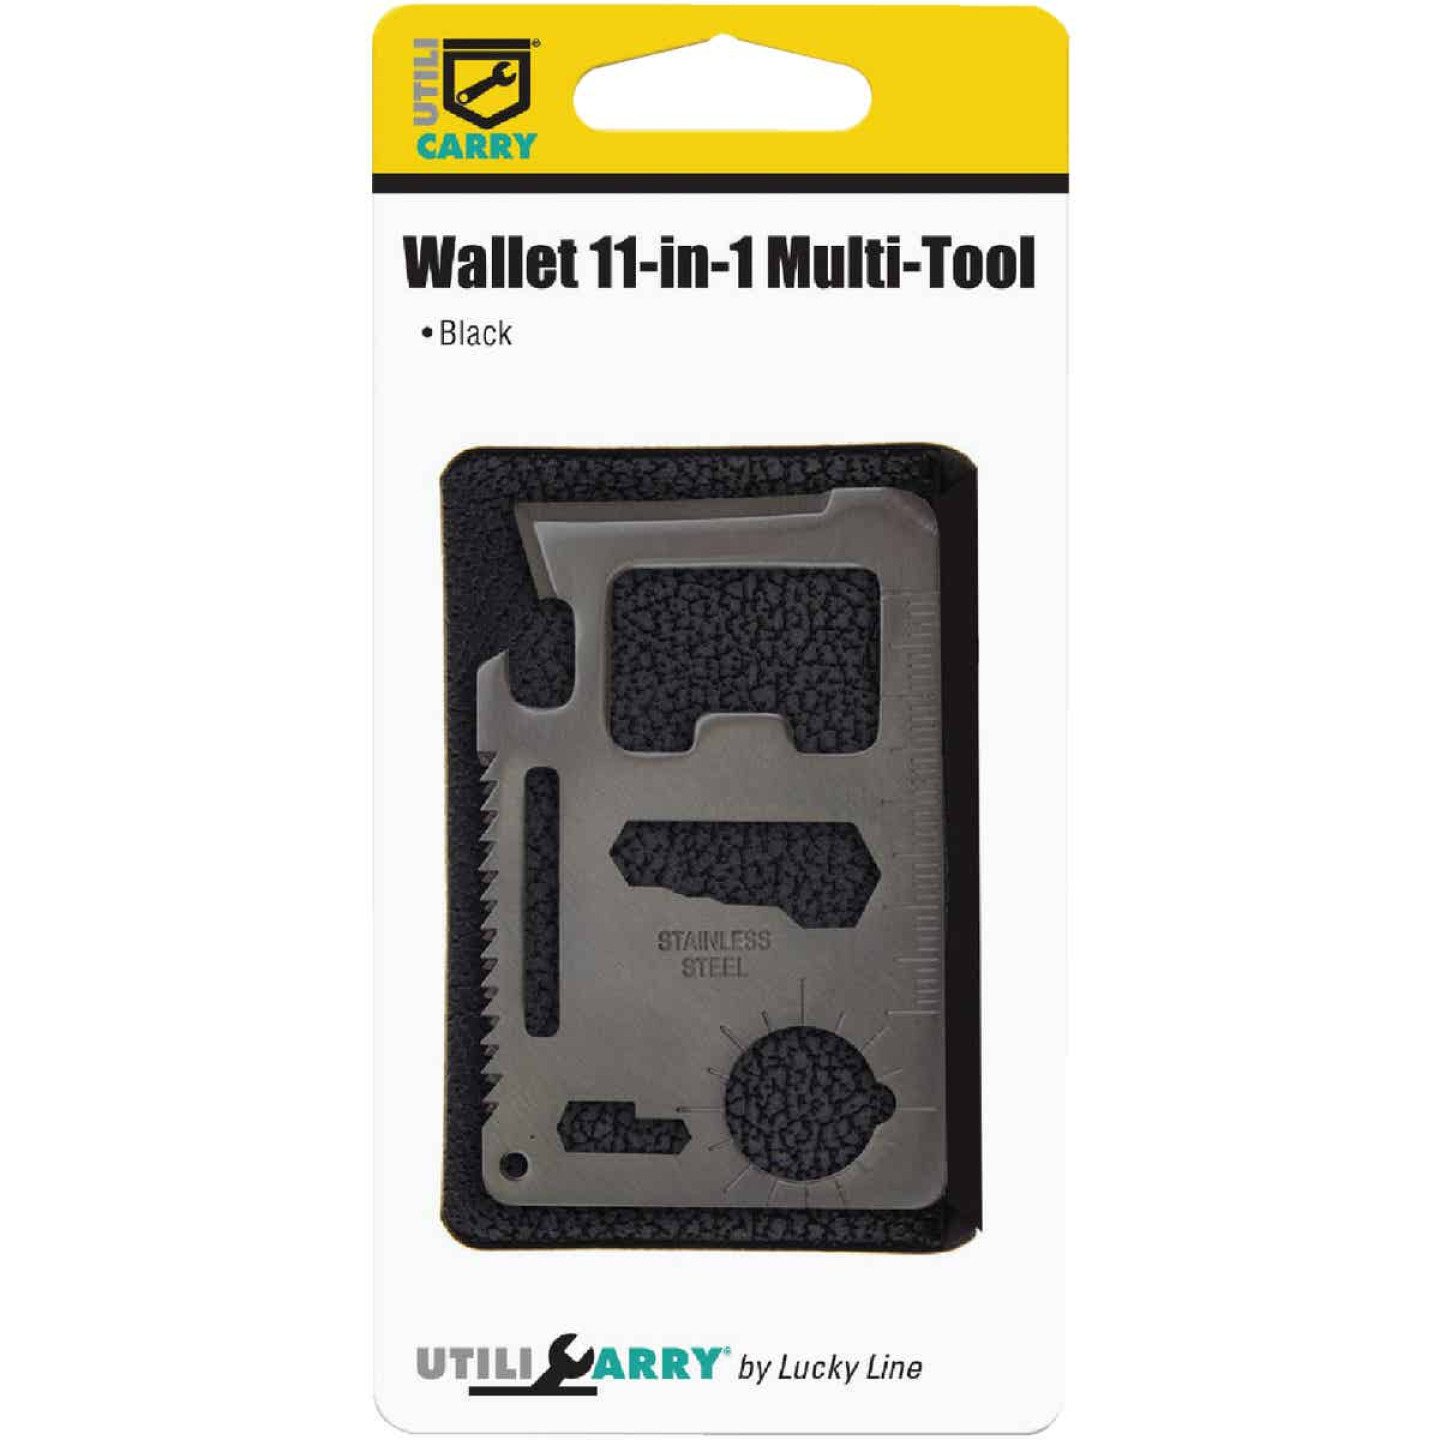 Lucky Line Utilicarry 11-in-1 Black Stainless Steel Wallet Multi-Tool Image 2